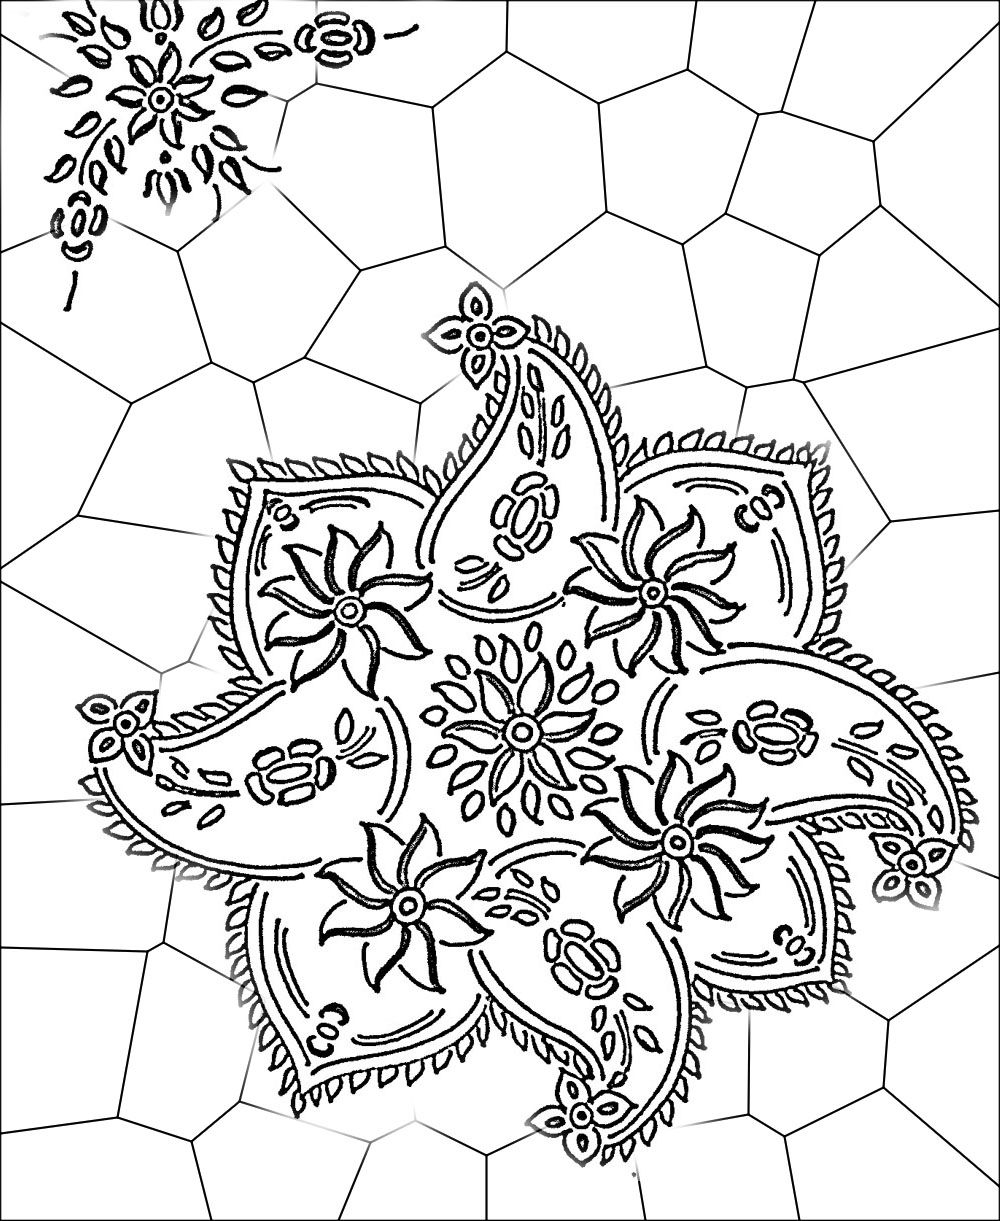 stained glass painting patterns stained glass patterns